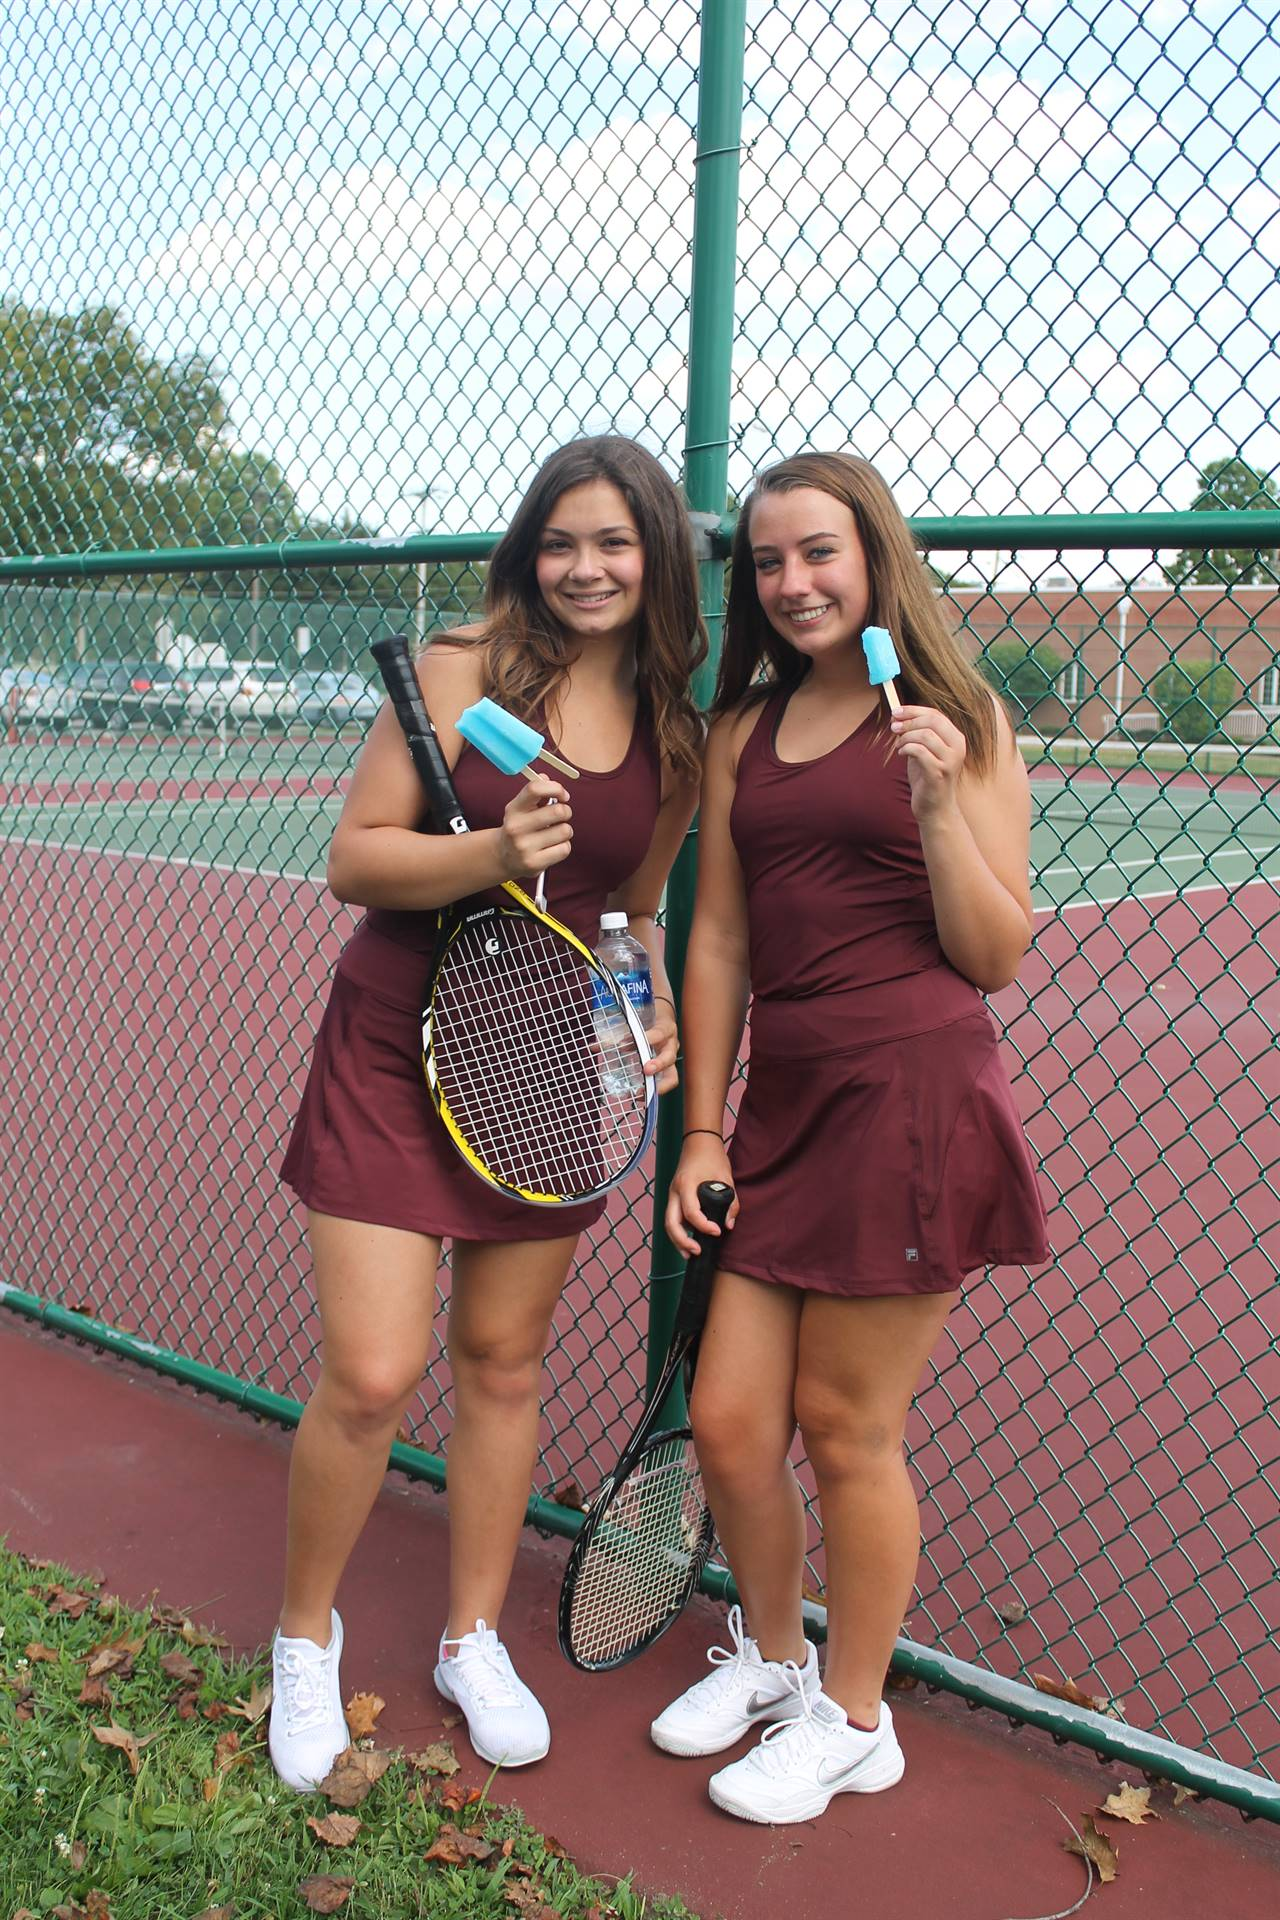 Varsity Tennis - Emily and Alaina chilling after the match!